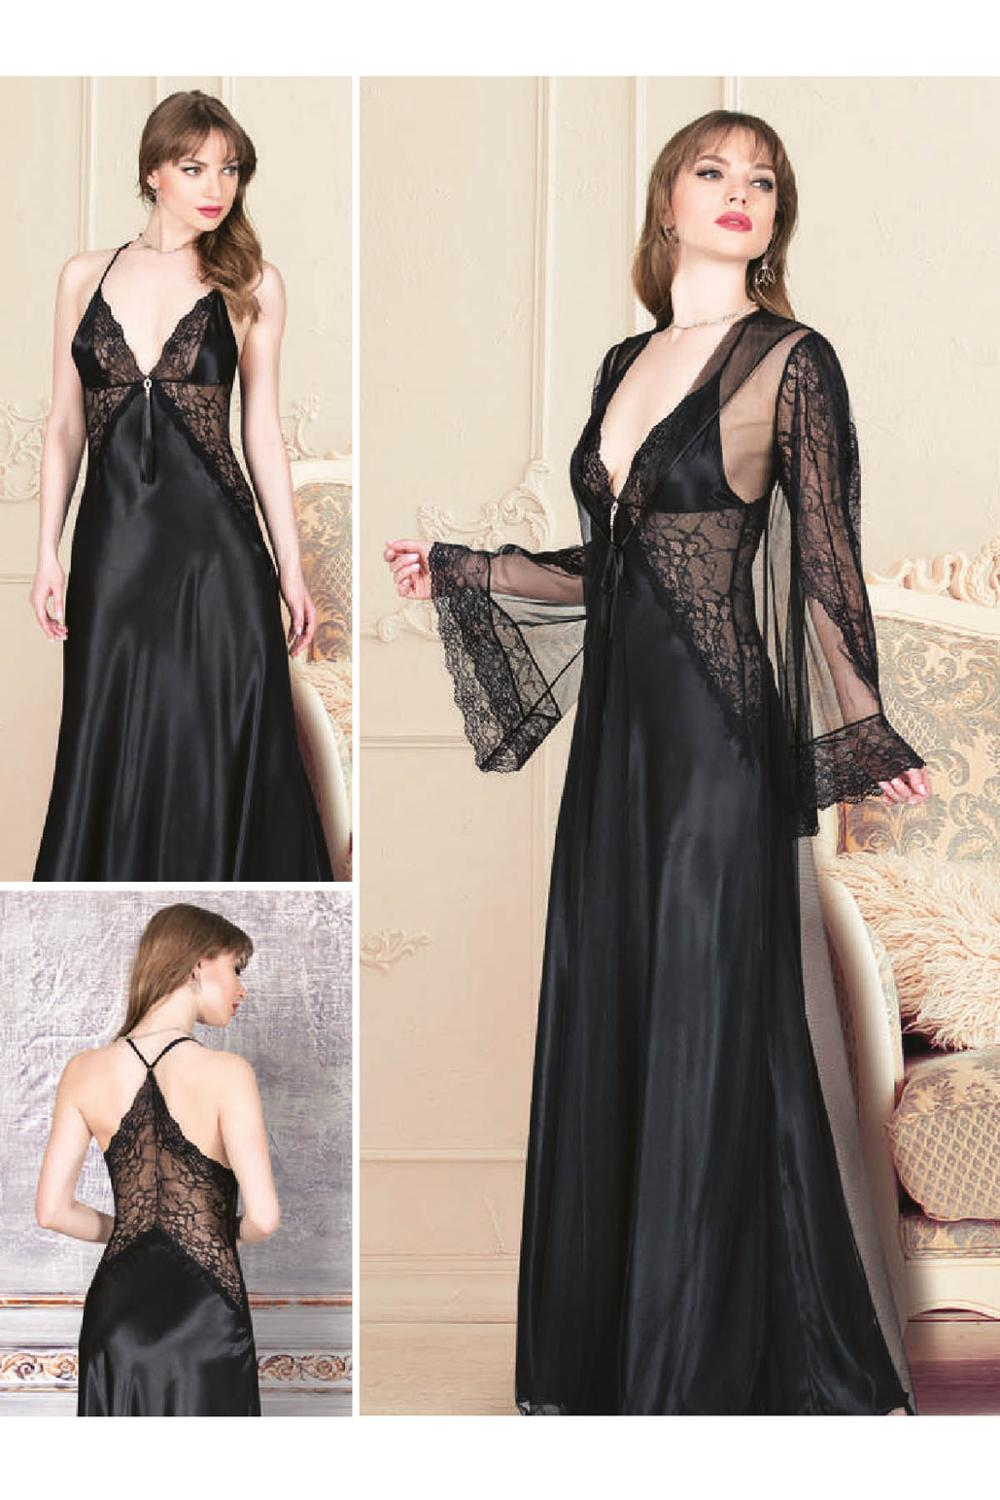 For drams Women's Satin Ruched Long Rope Hanger 2 Piece Nightgown Dress Set 4941